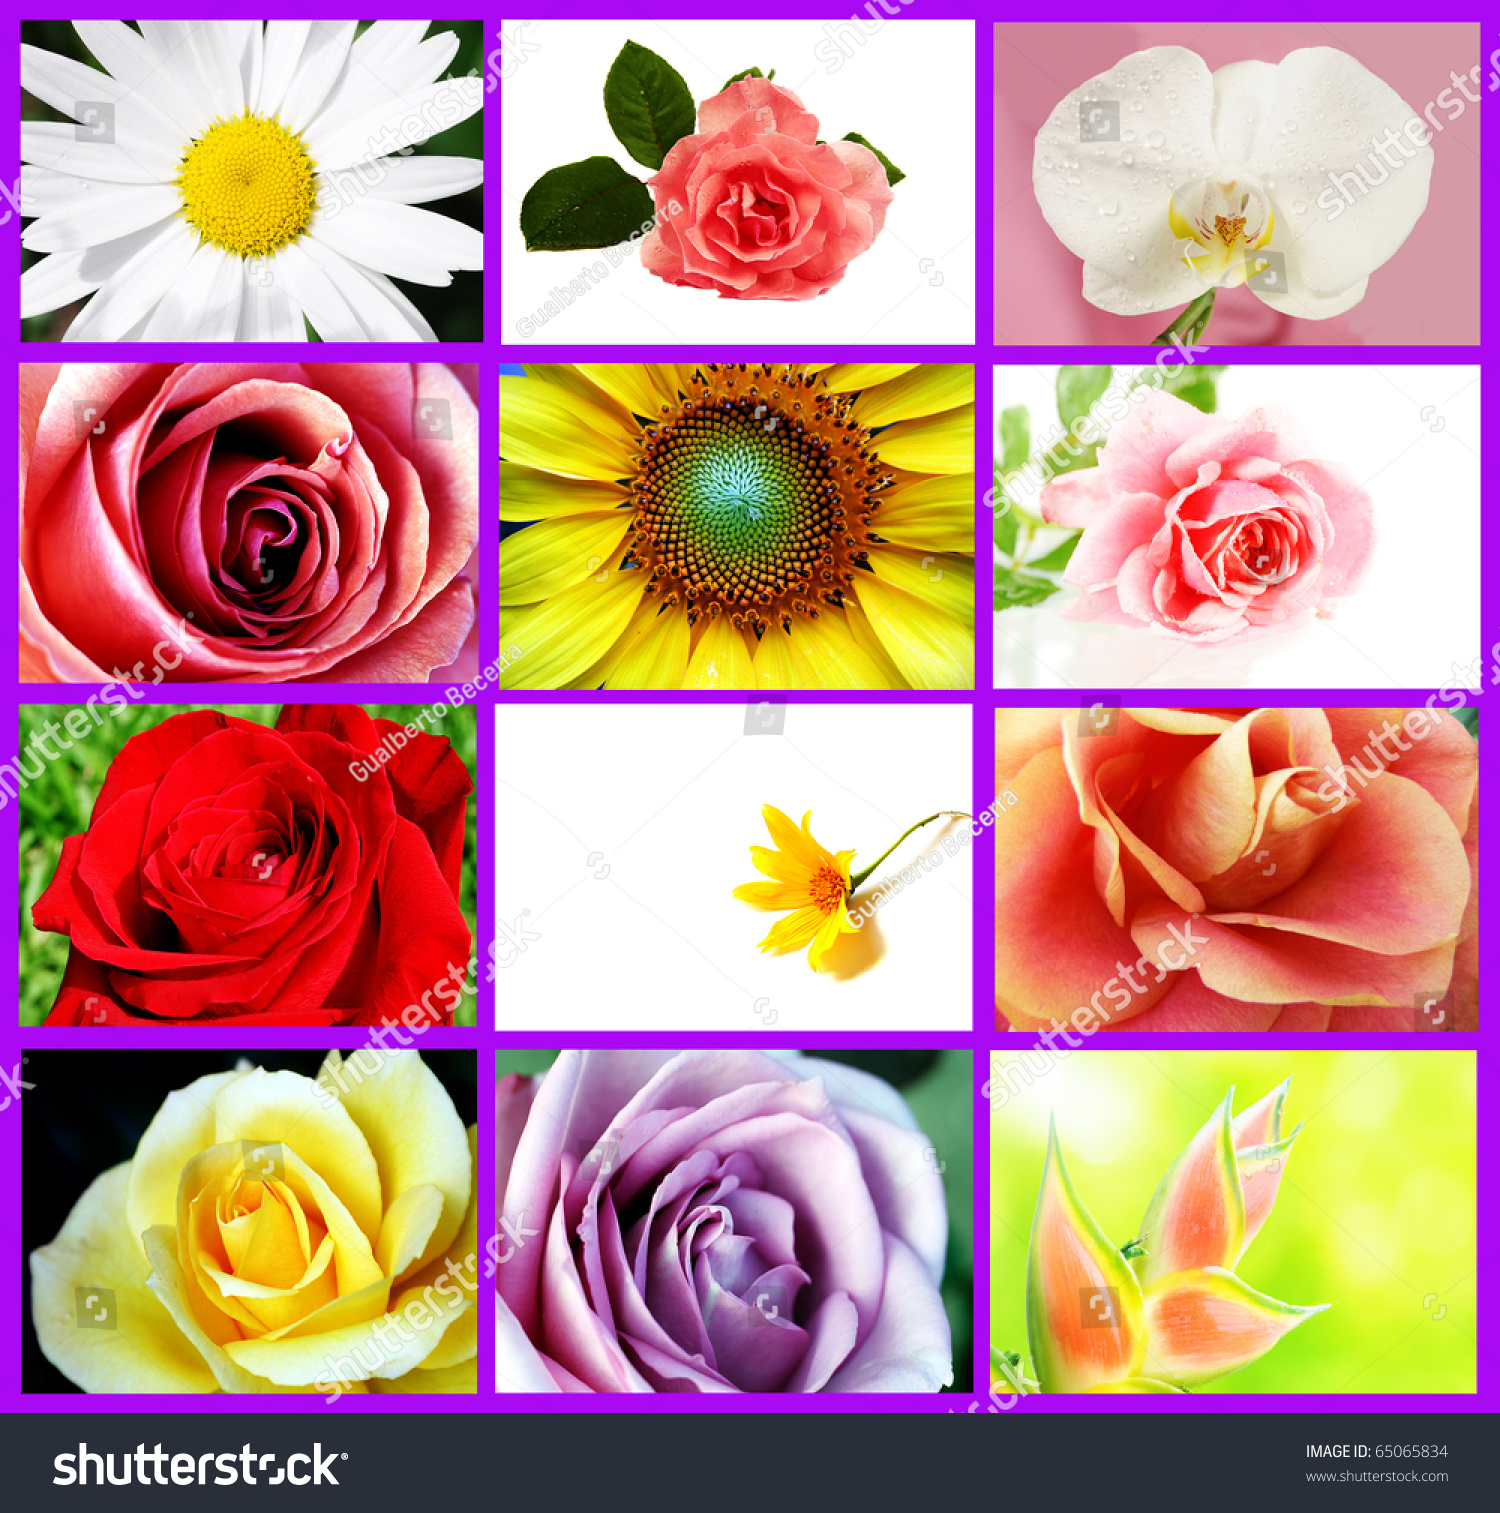 Several Types Beautiful Flowers Collage Stock Photo Edit Now